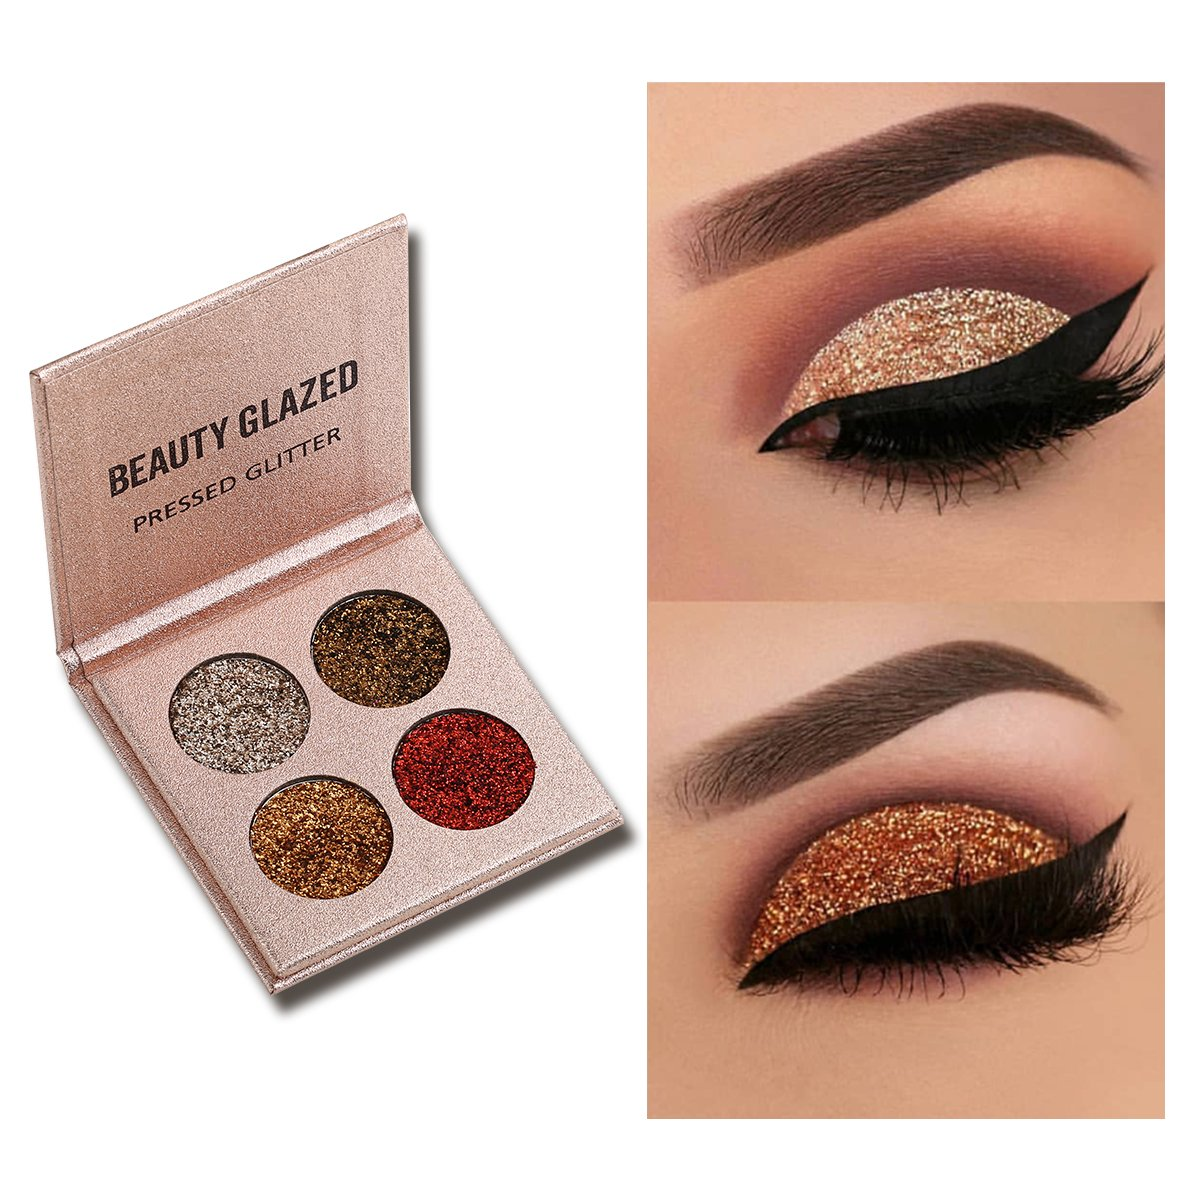 Beauty Glazed Professional Cosmetic Shimmer Eyeshadow Palette Insanely Pigments 4 Glitter Make Up Palettes Long Lasting Waterproof (Rose Gold)